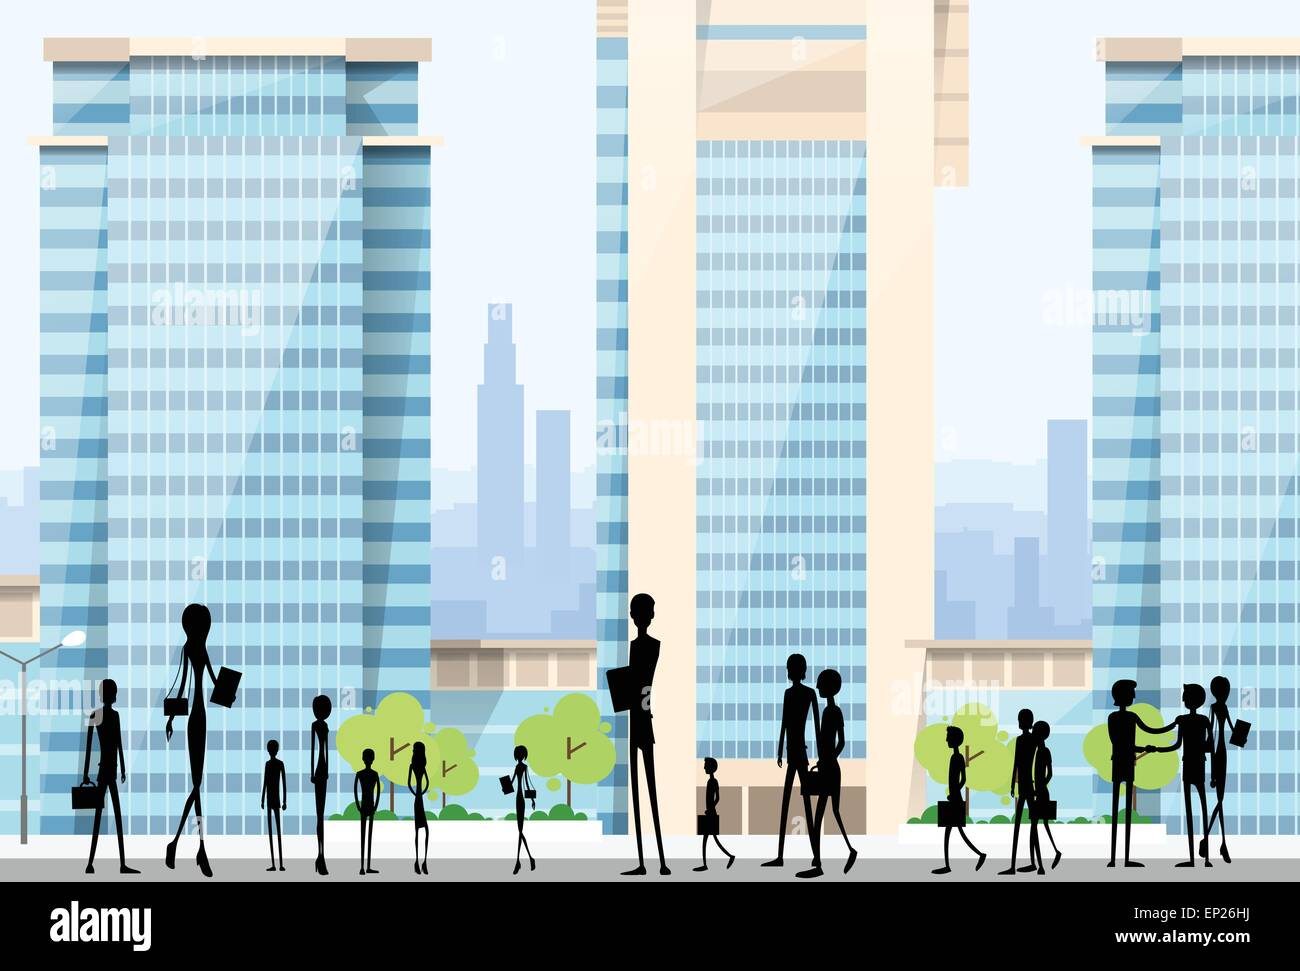 People Silhouettes Crowd on City Street Modern Office Buildings - Stock Vector